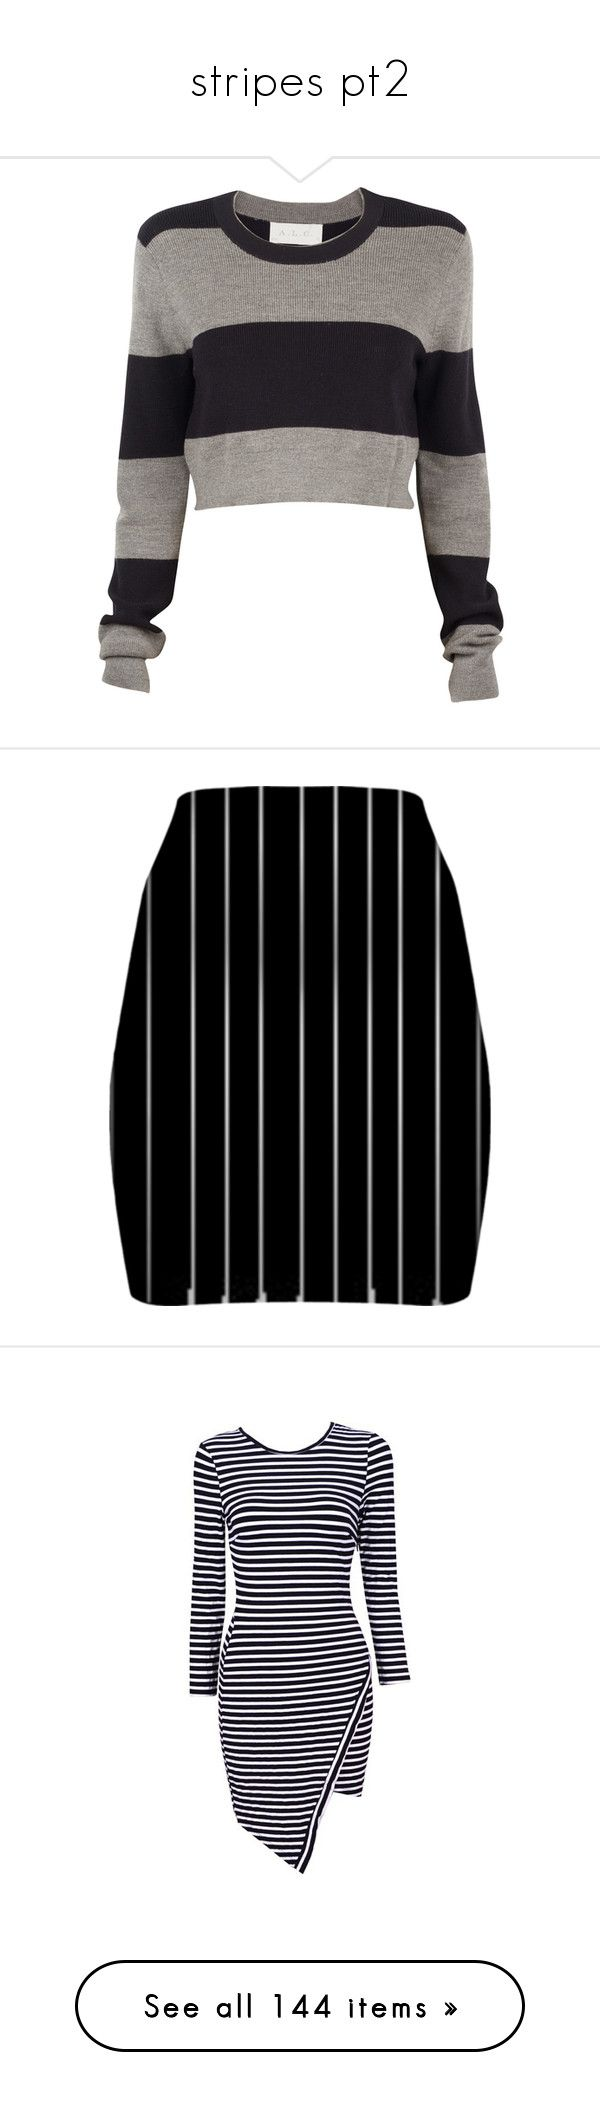 """""""stripes pt2"""" by rowan-asha ❤ liked on Polyvore featuring tops, sweaters, shirts, crop tops, gray long sleeve shirt, long sleeve sweater, long-sleeve crop tops, striped long sleeve shirt, striped sweater and skirts"""